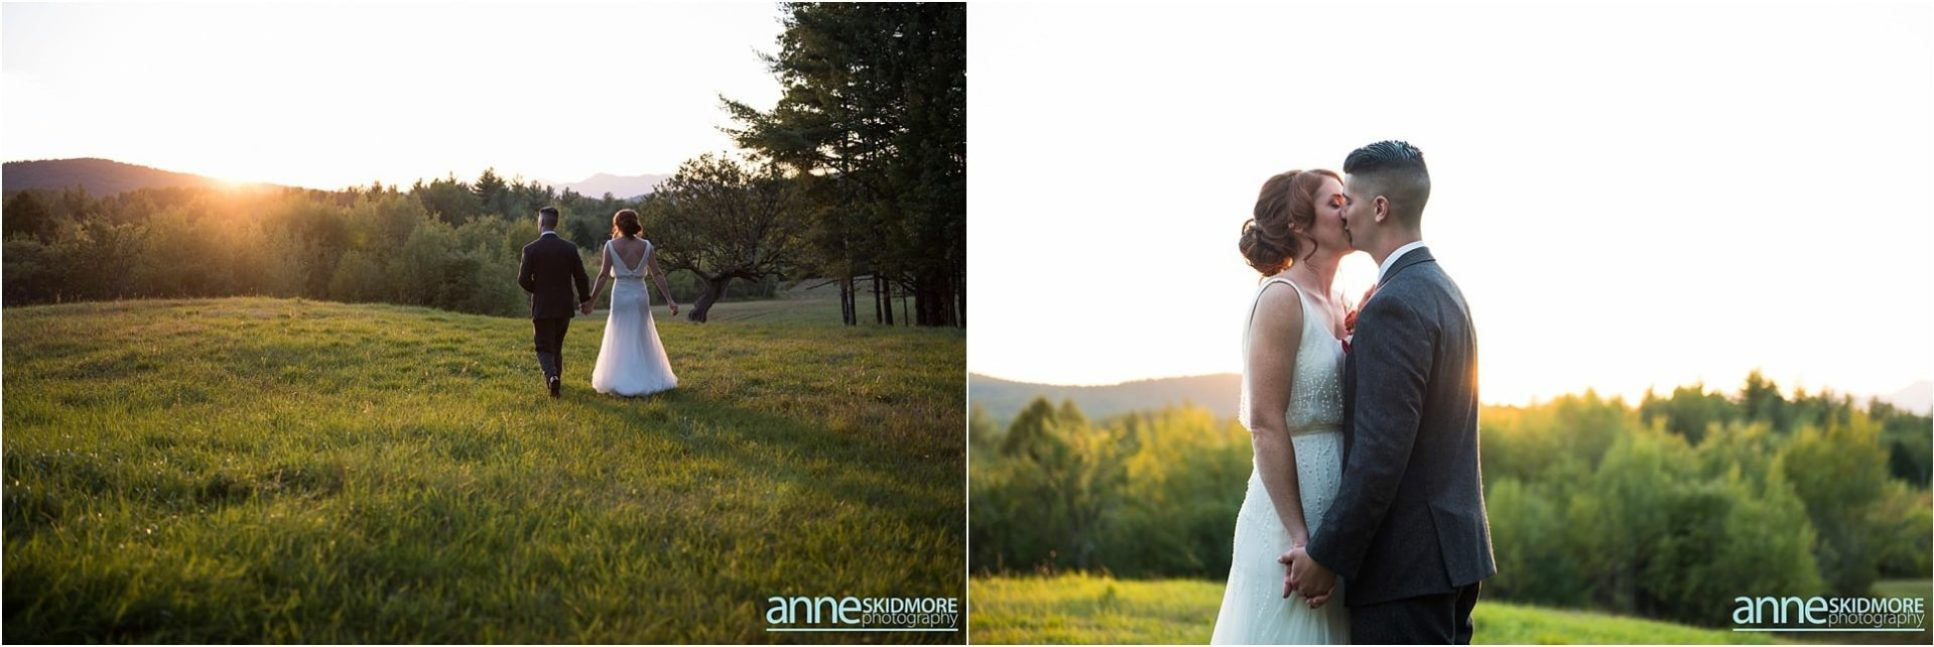 Stone_Mountain_Arts_Center_Wedding__037